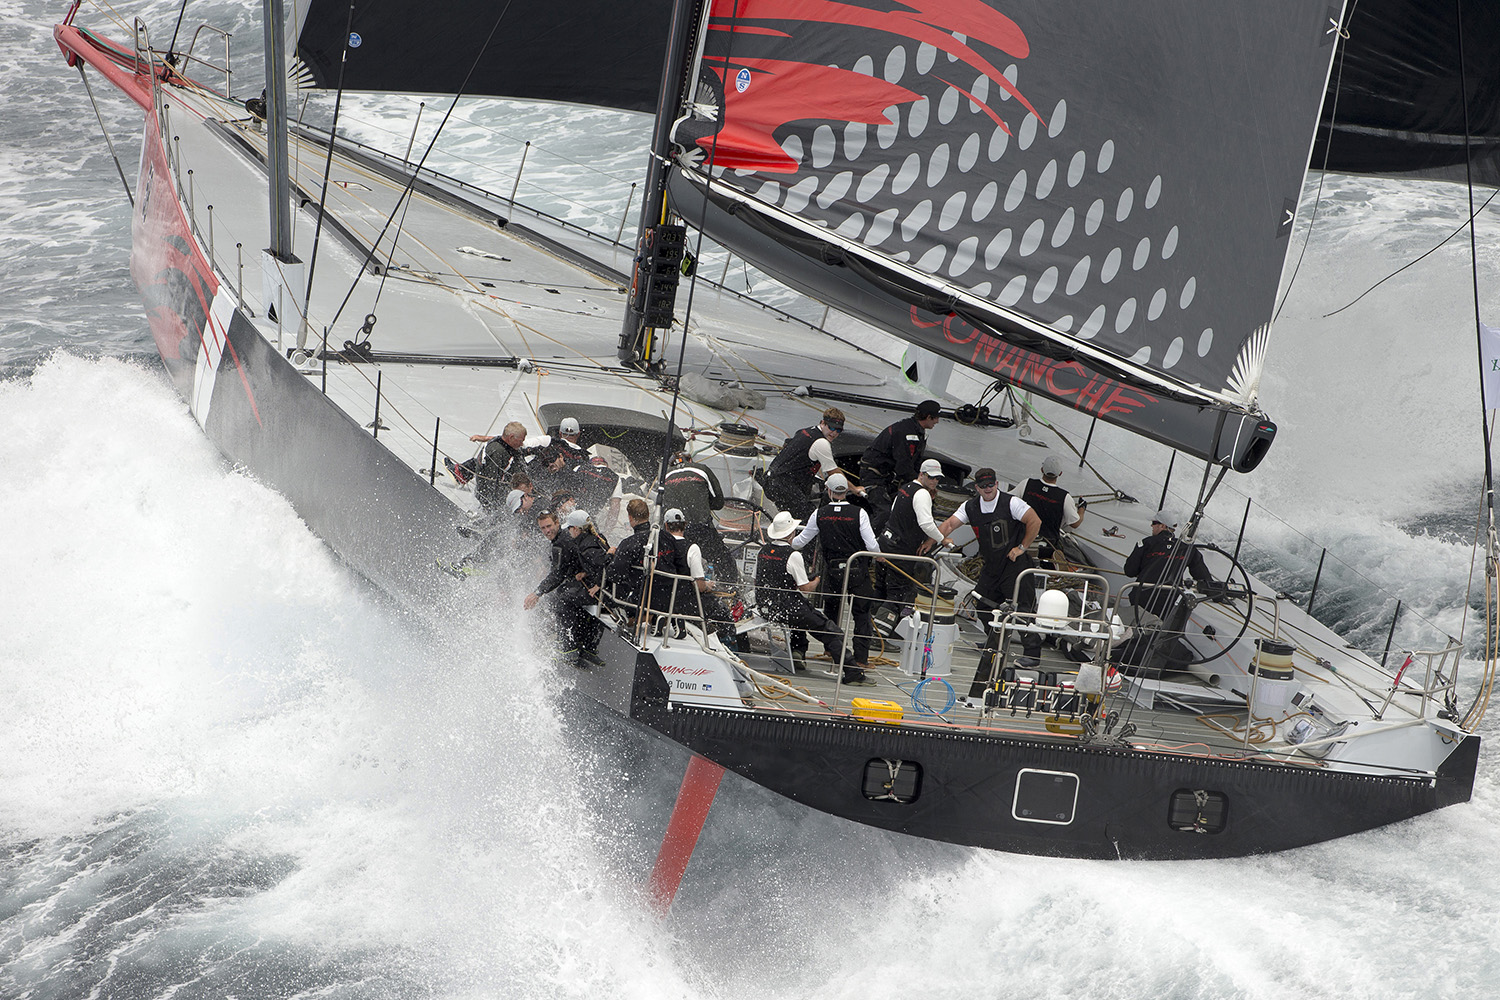 Comanche at the start of the Rolex Sydney Hobart Yacht Race. Photo Andrea Francolini.